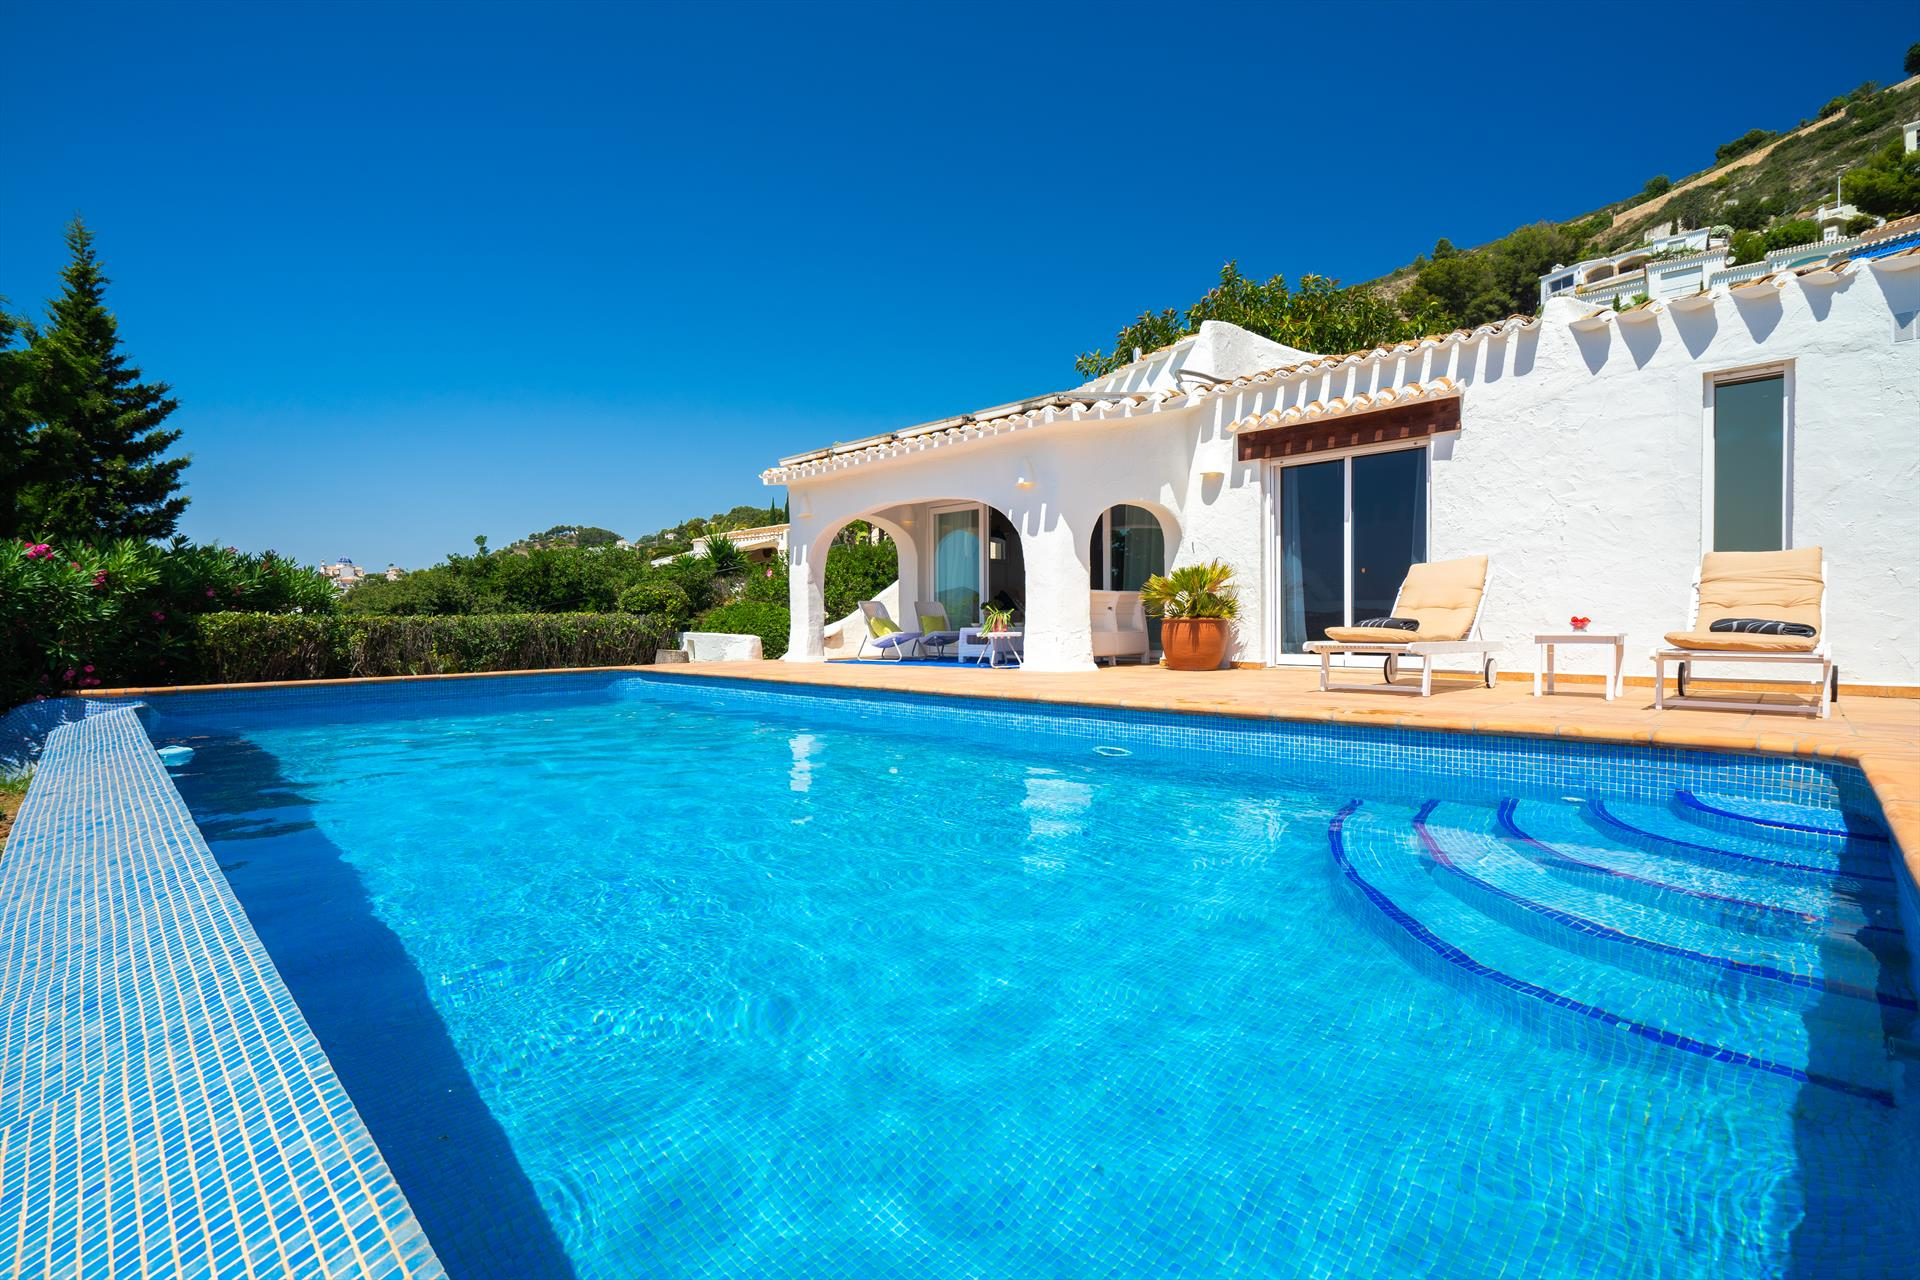 Nalu, Rustic and romantic villa in Javea, on the Costa Blanca, Spain  with private pool for 6 persons.....